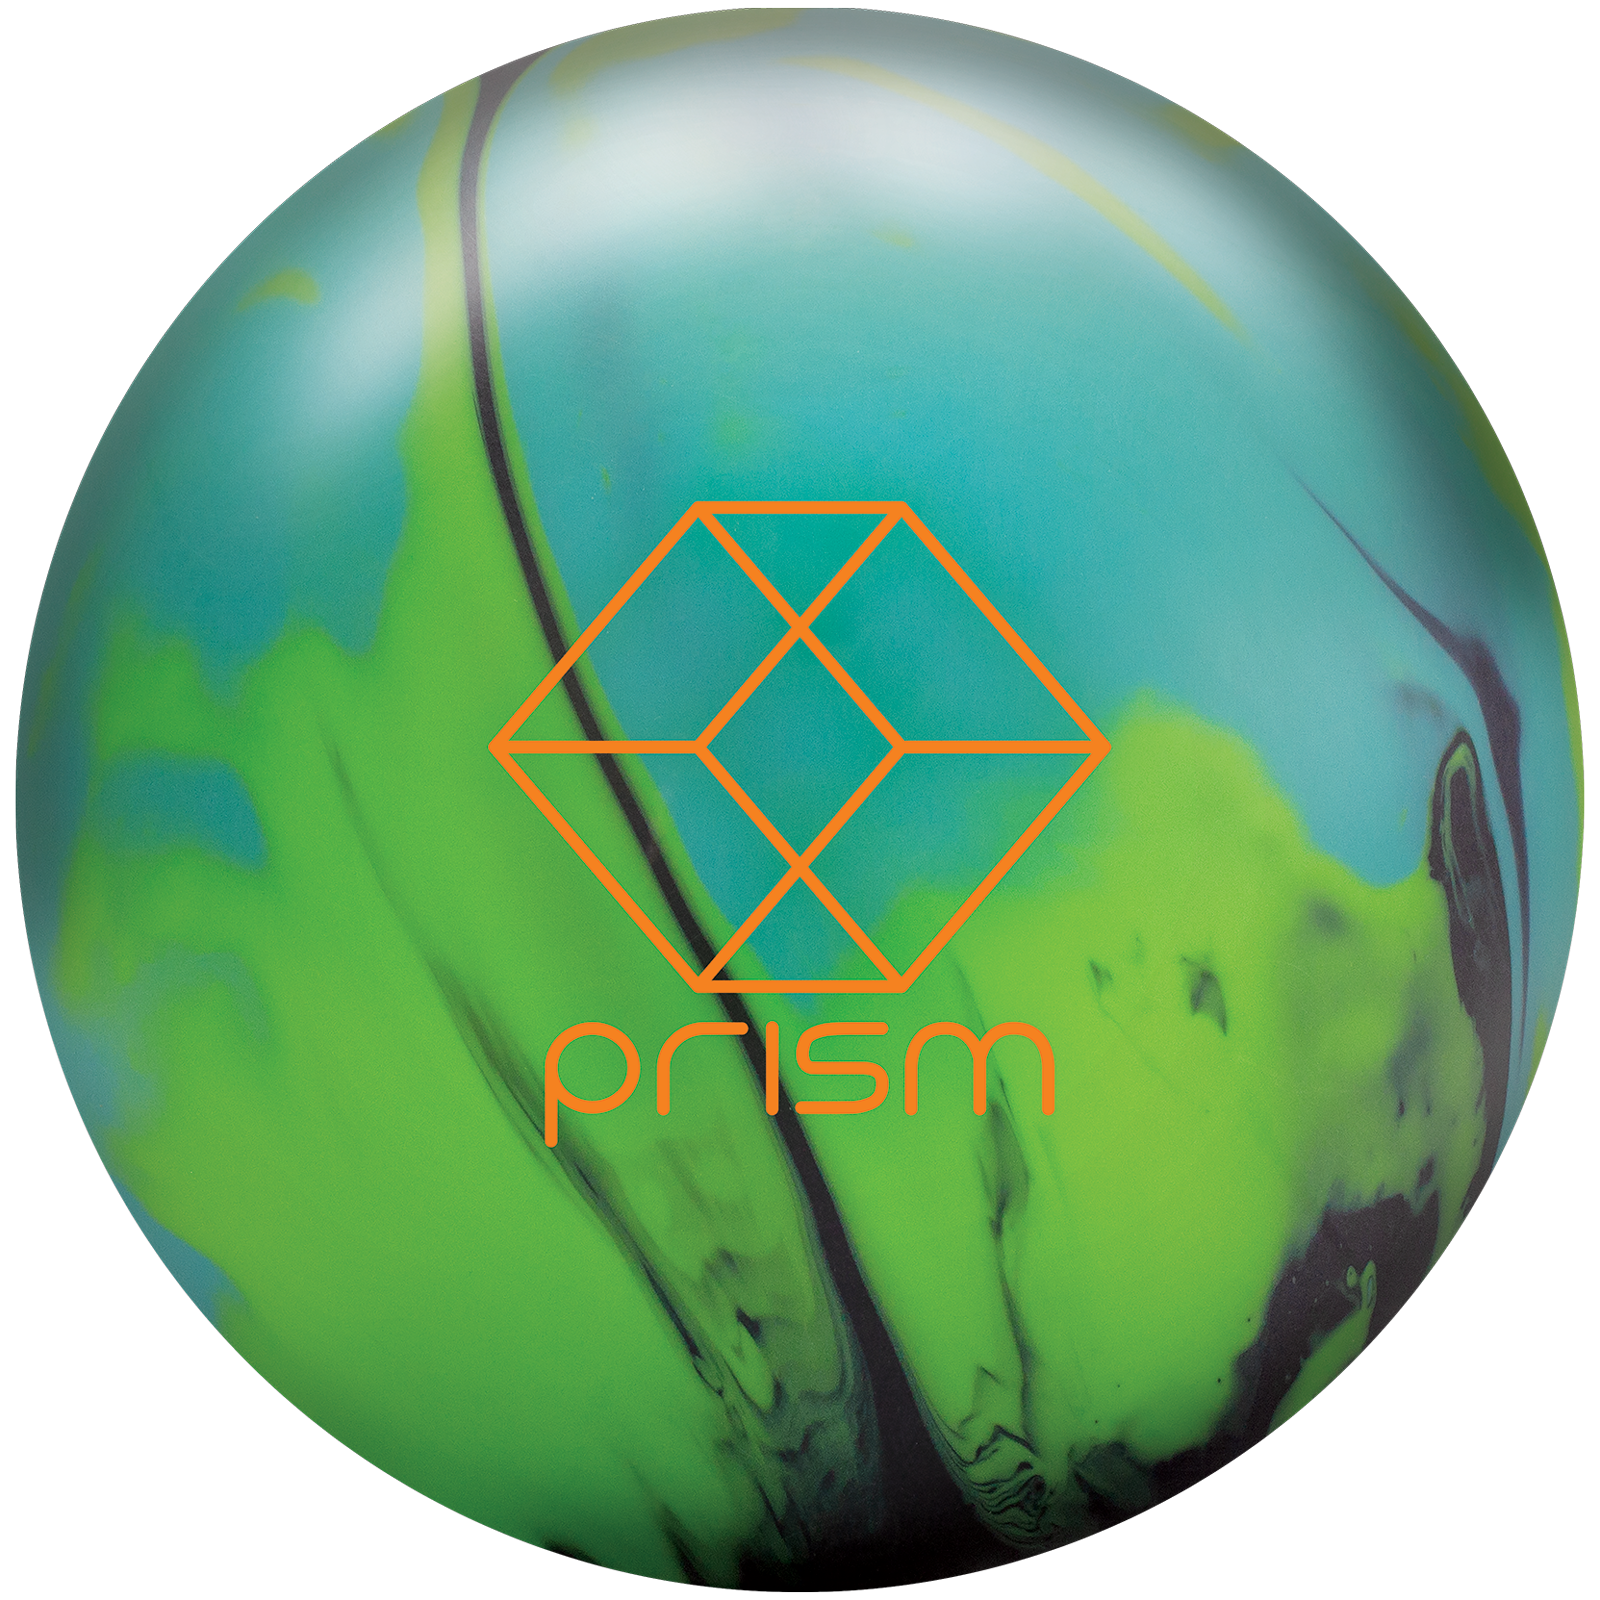 Prism solid bowling ball